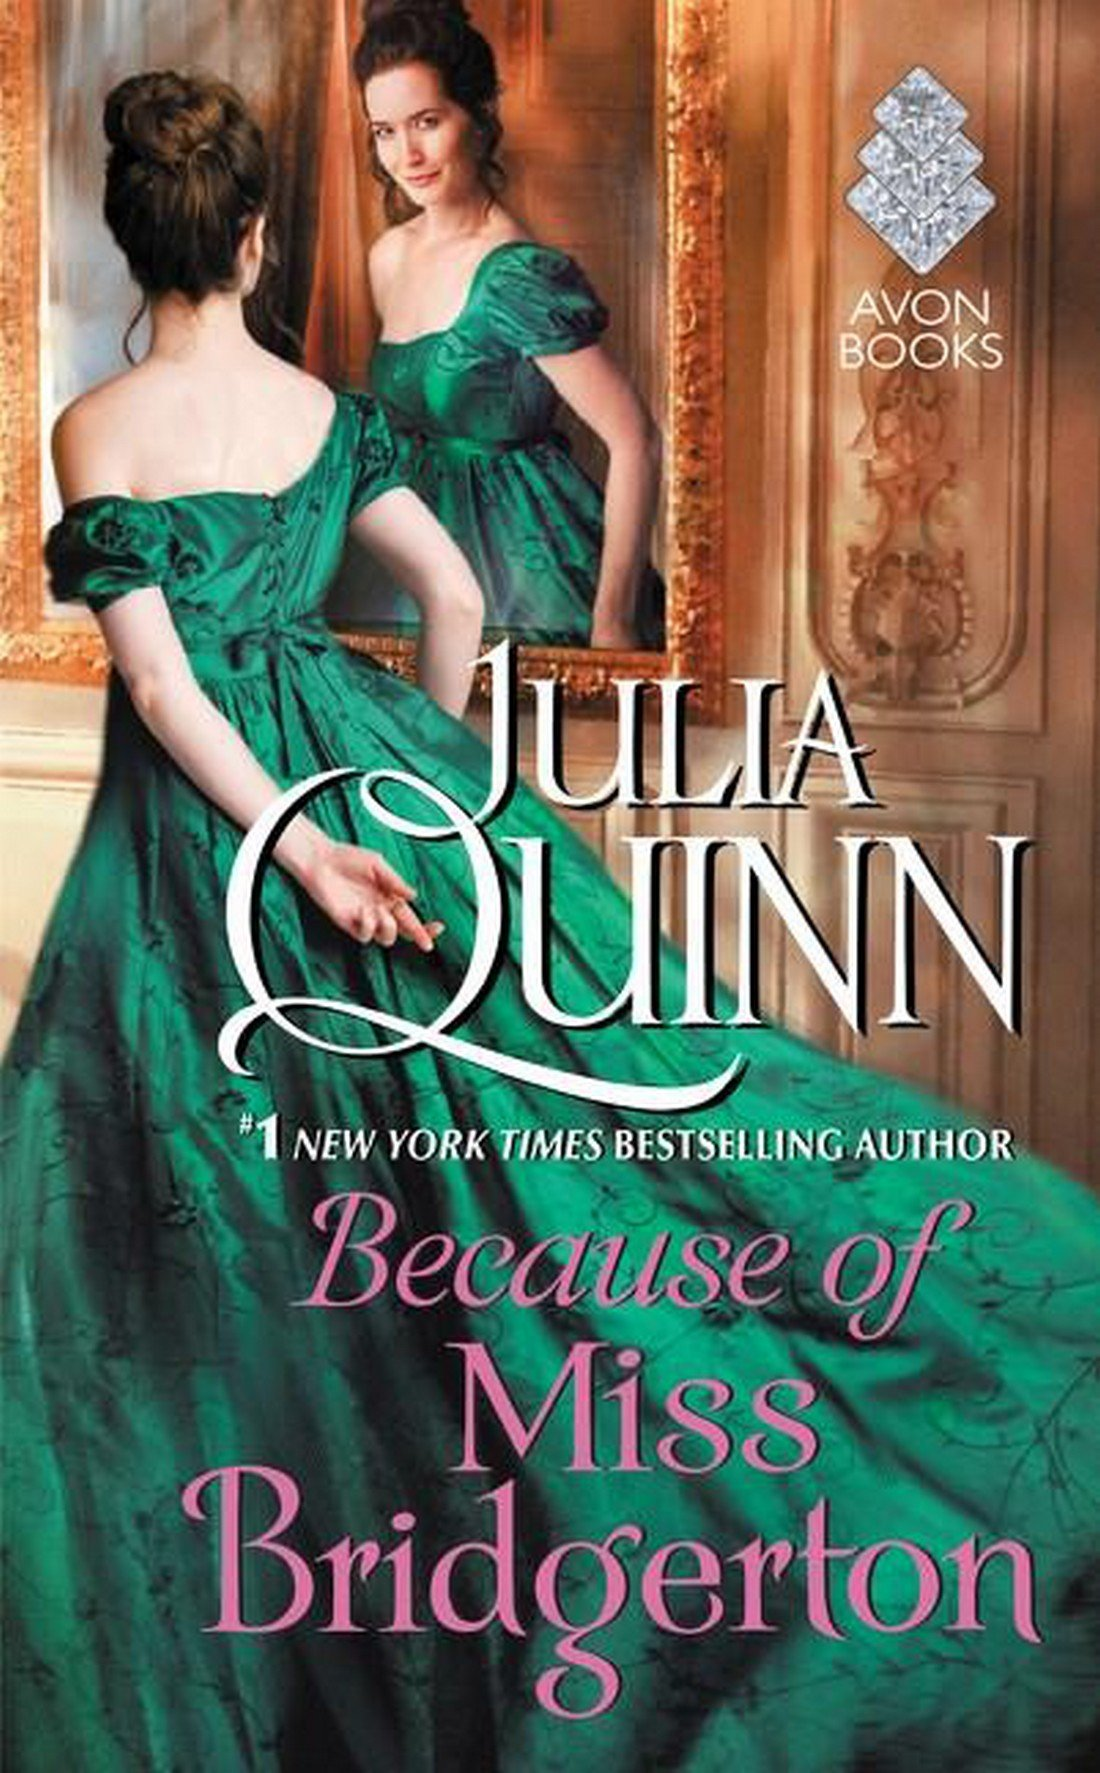 serie bridgerton de julia quinn